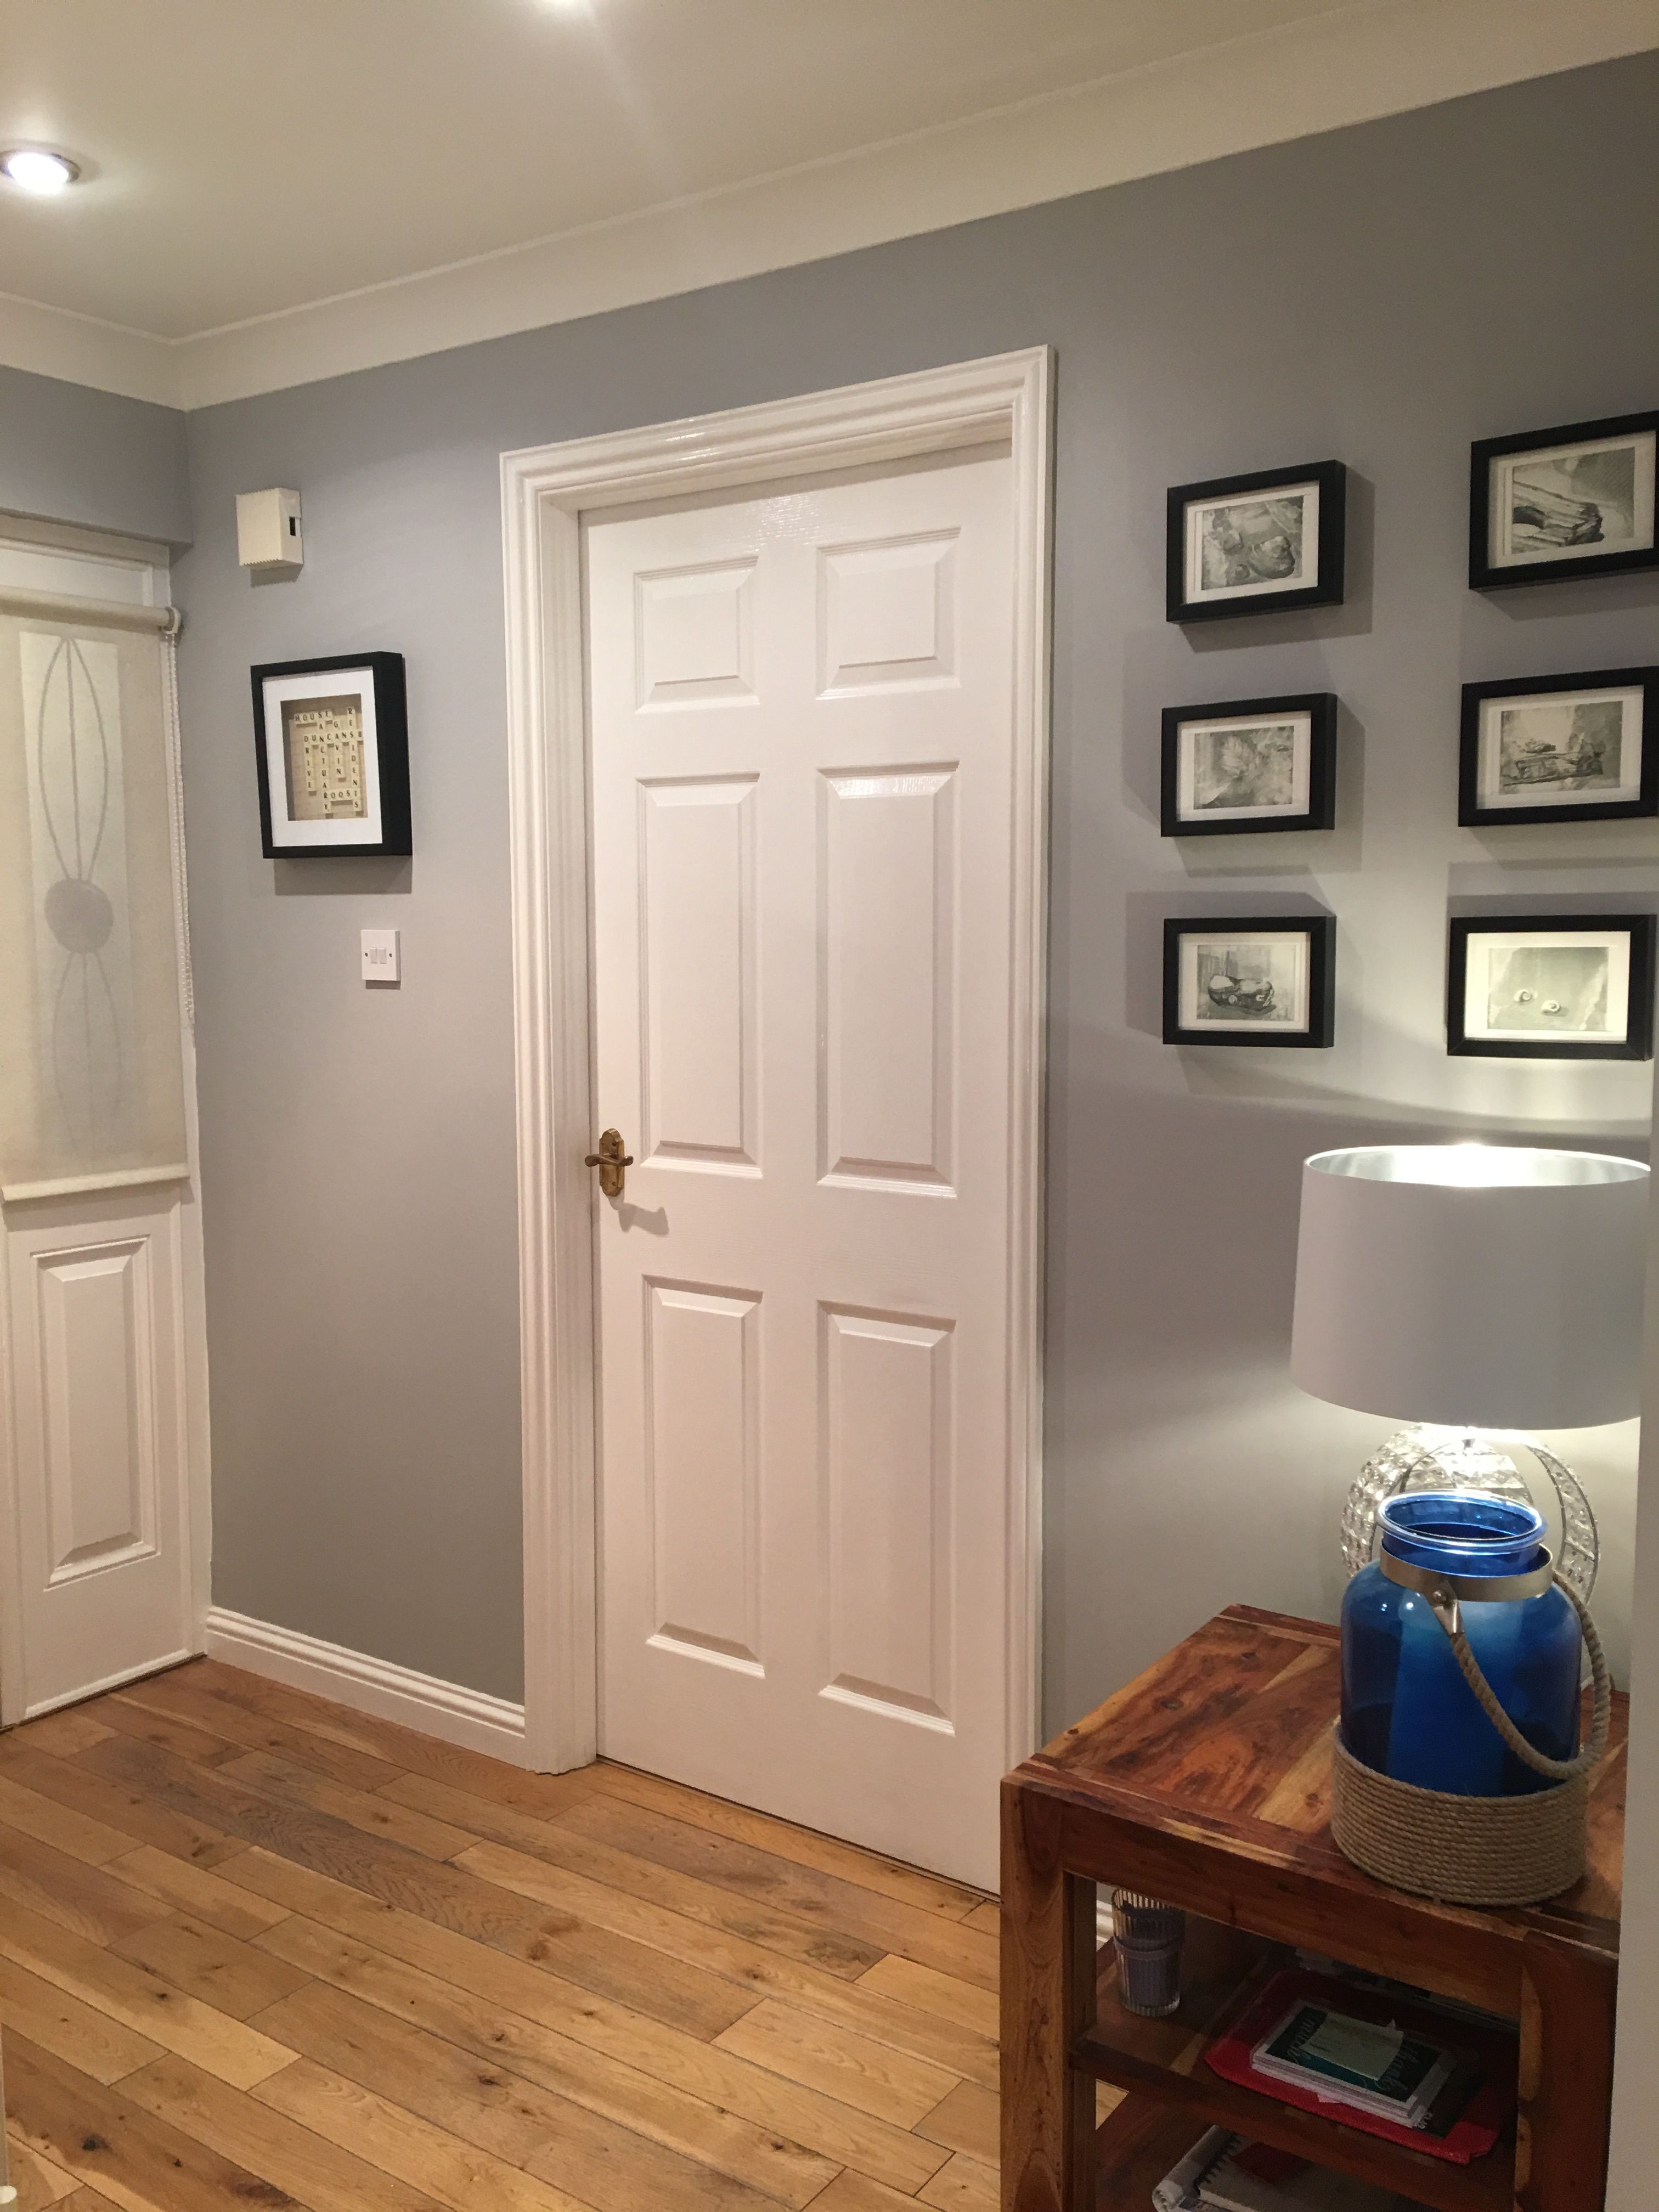 dulux grey colour schemes for living rooms paint ideas room chic shadow is absolutely beautiful i spent awhile trying to decide on a perfect my hall and this certainly